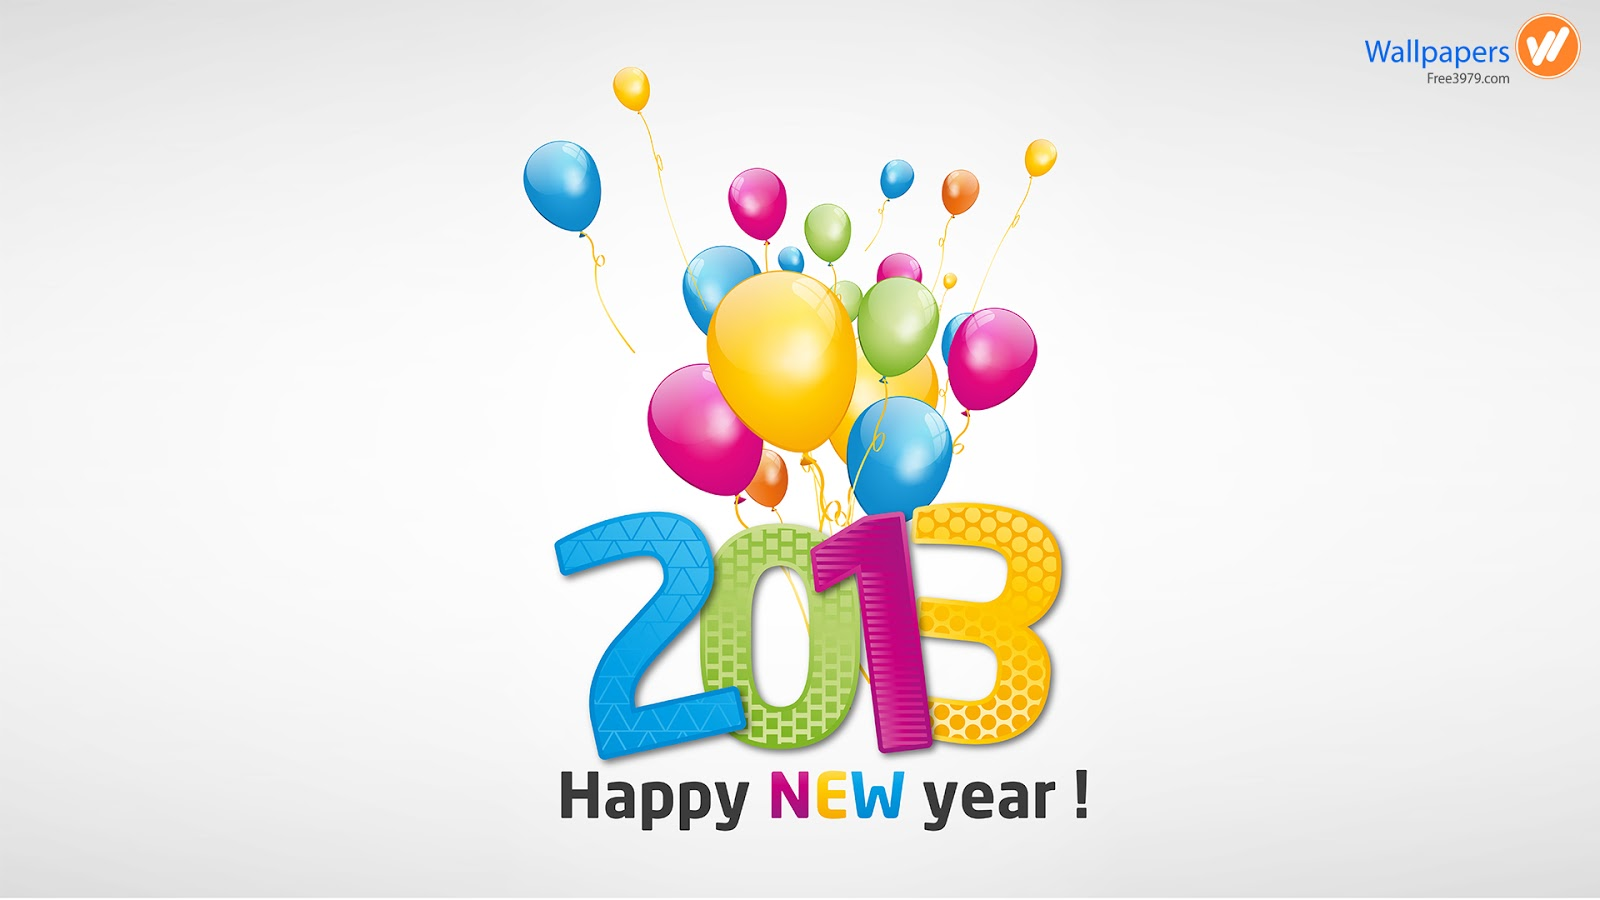 Amazing New Year Wishes Wallpapers: 20+ Amazing Happy New Year 2013 Wallpapers